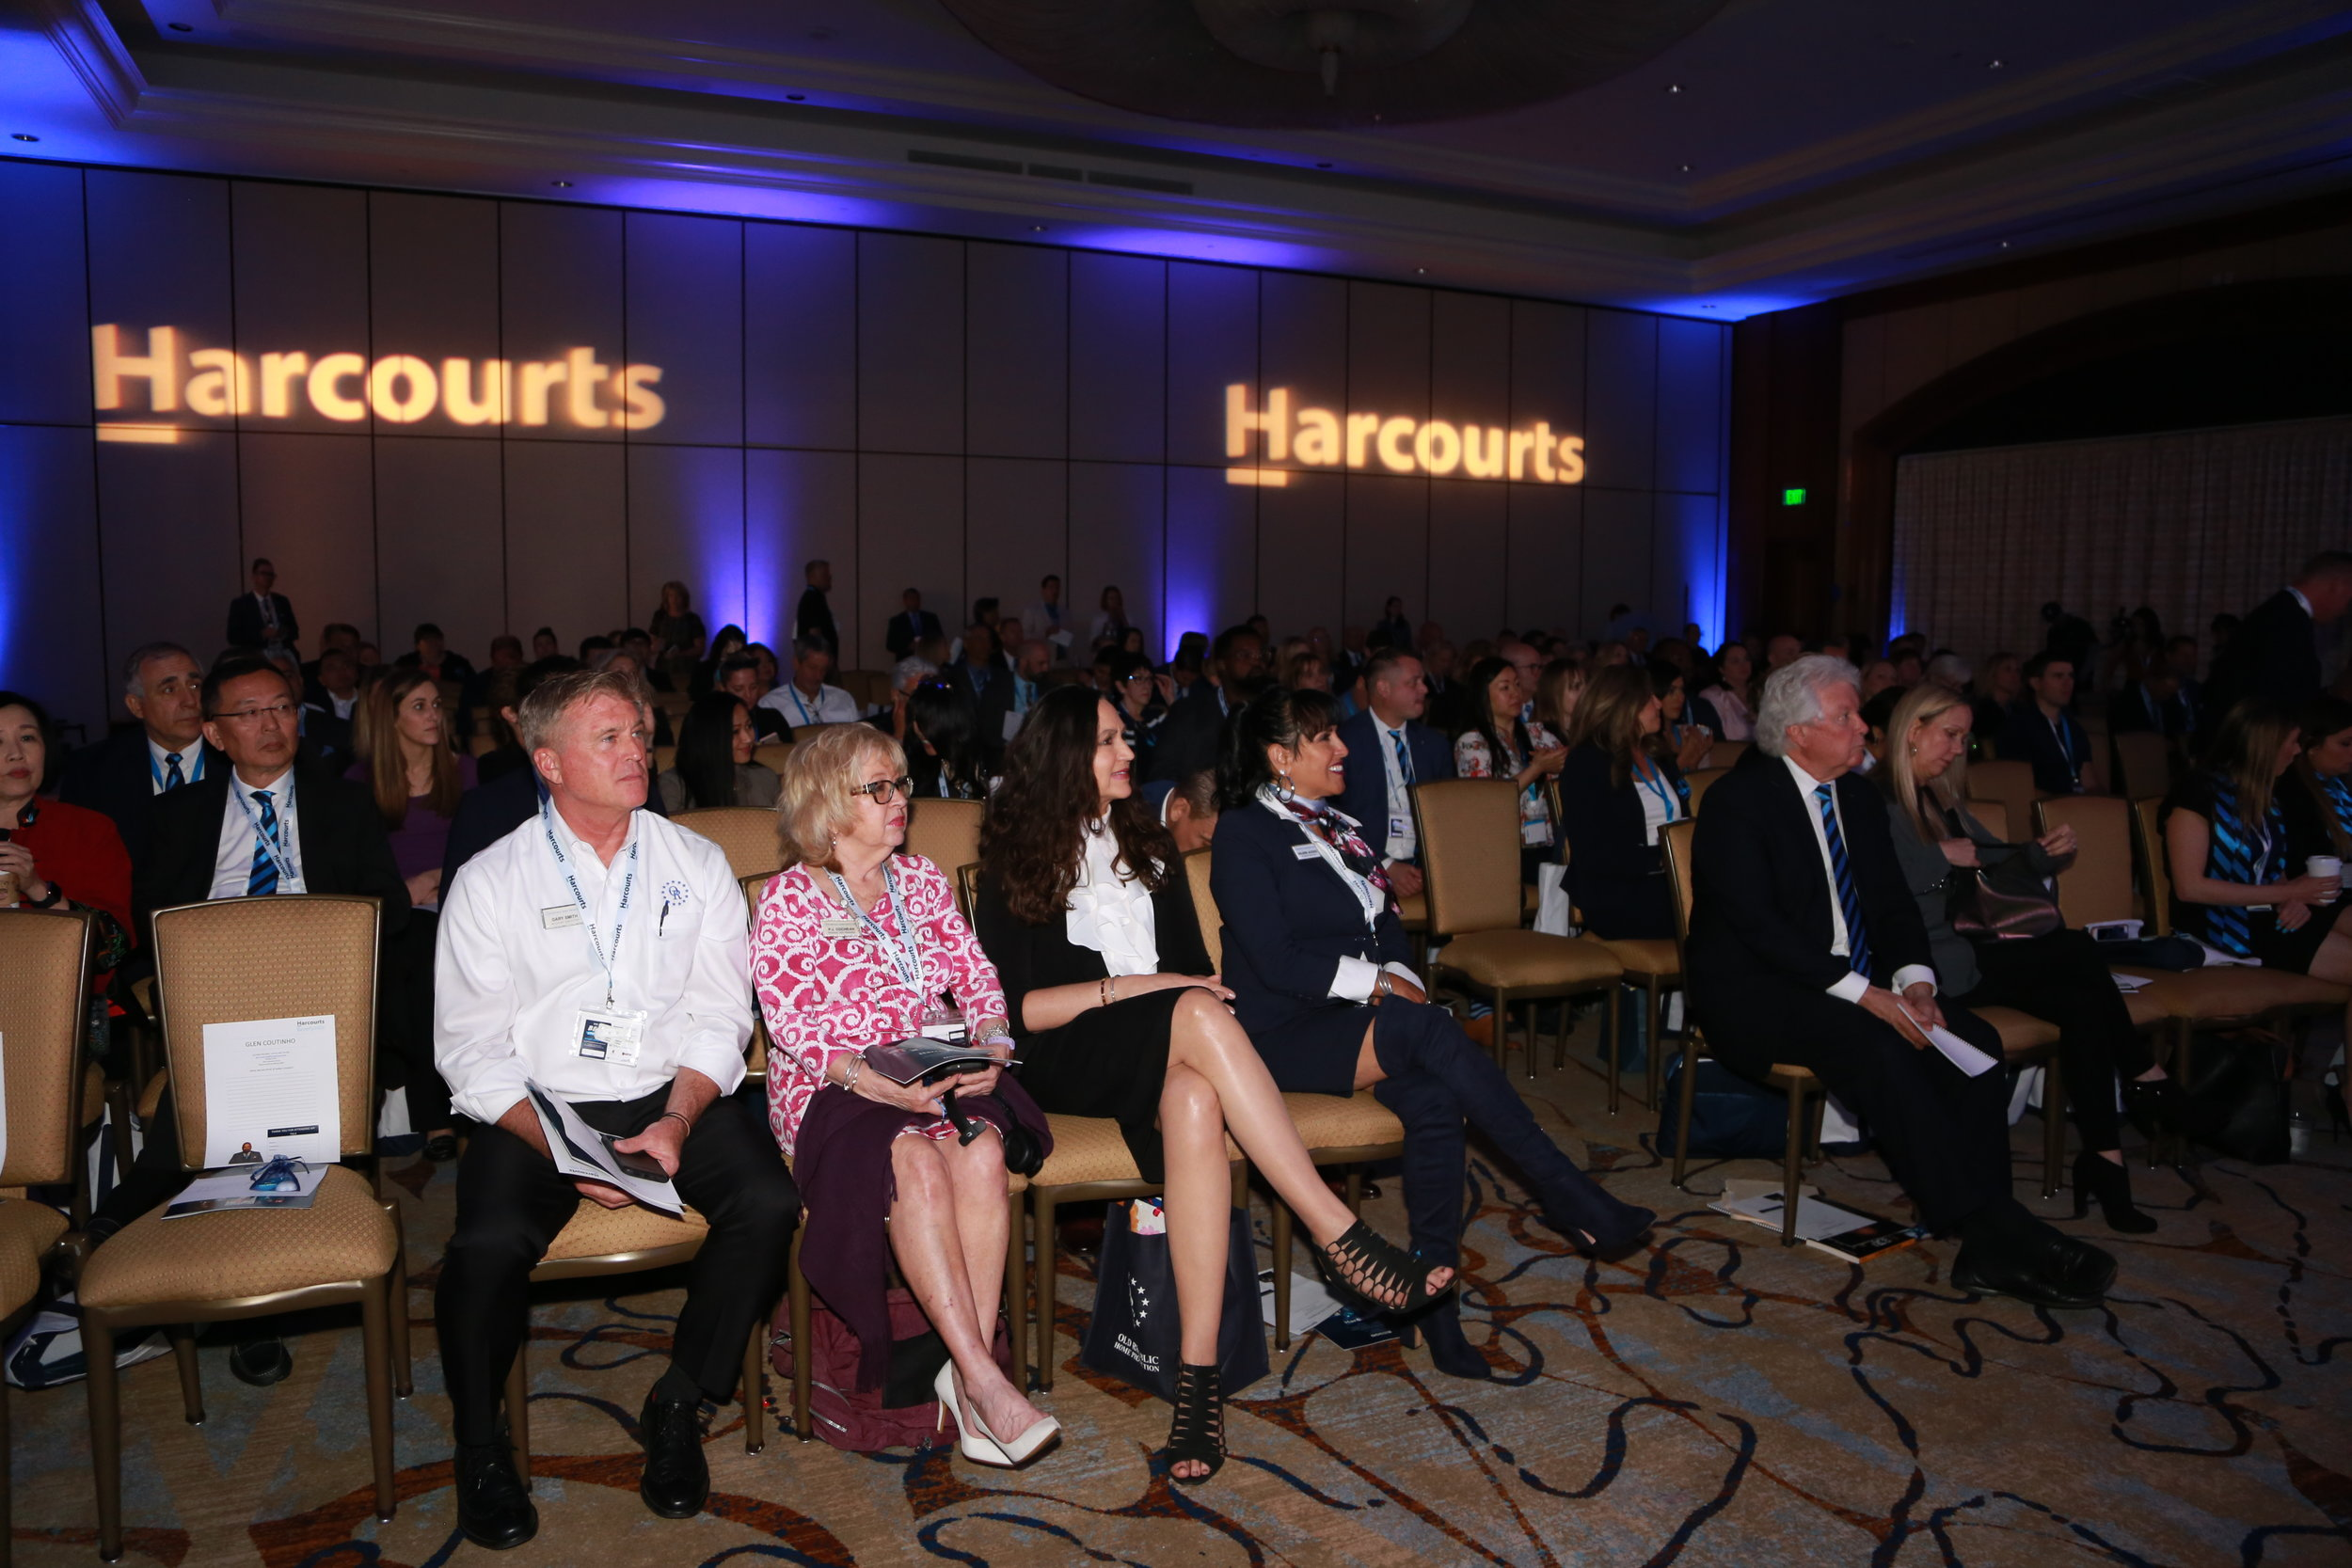 2019-03-26 Harcourts Conference - Day 2 1341.JPG